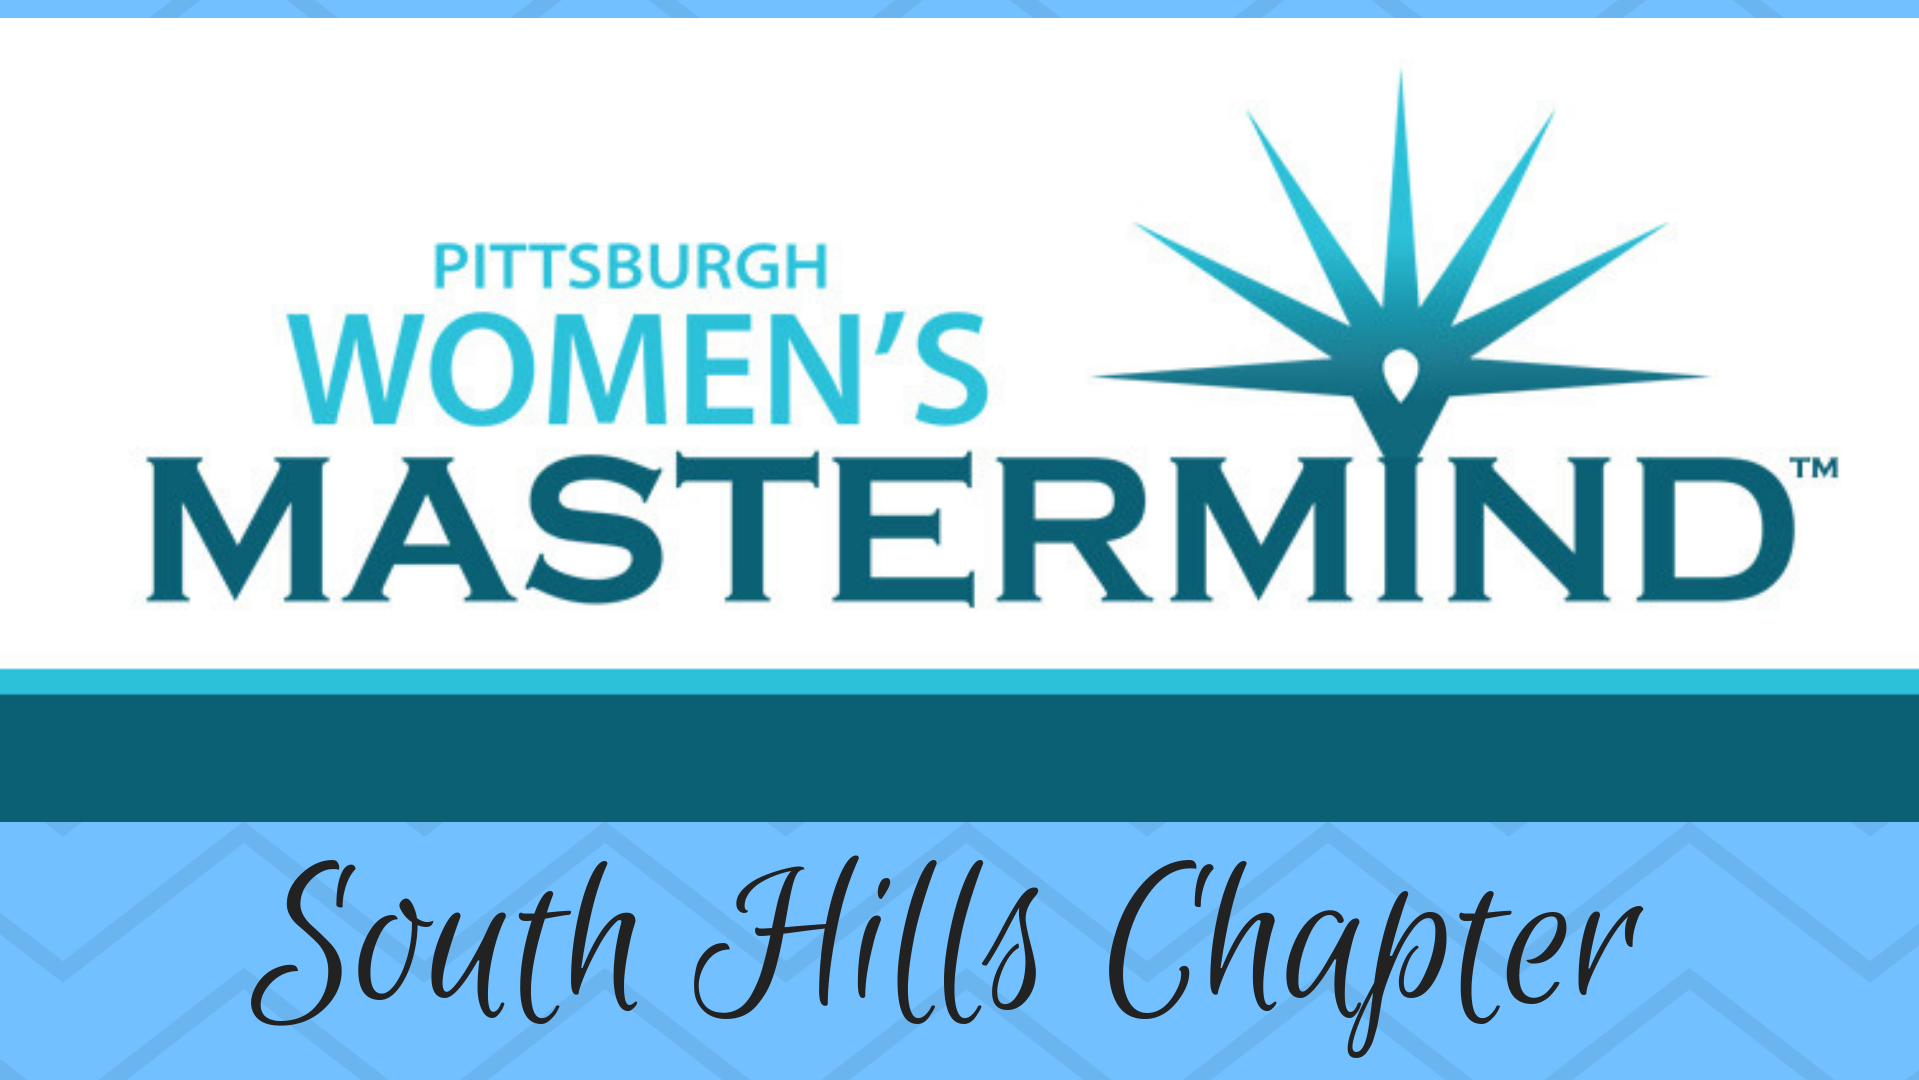 Pittsburgh Women's Mastermind for Entrepreneurs: South Hills